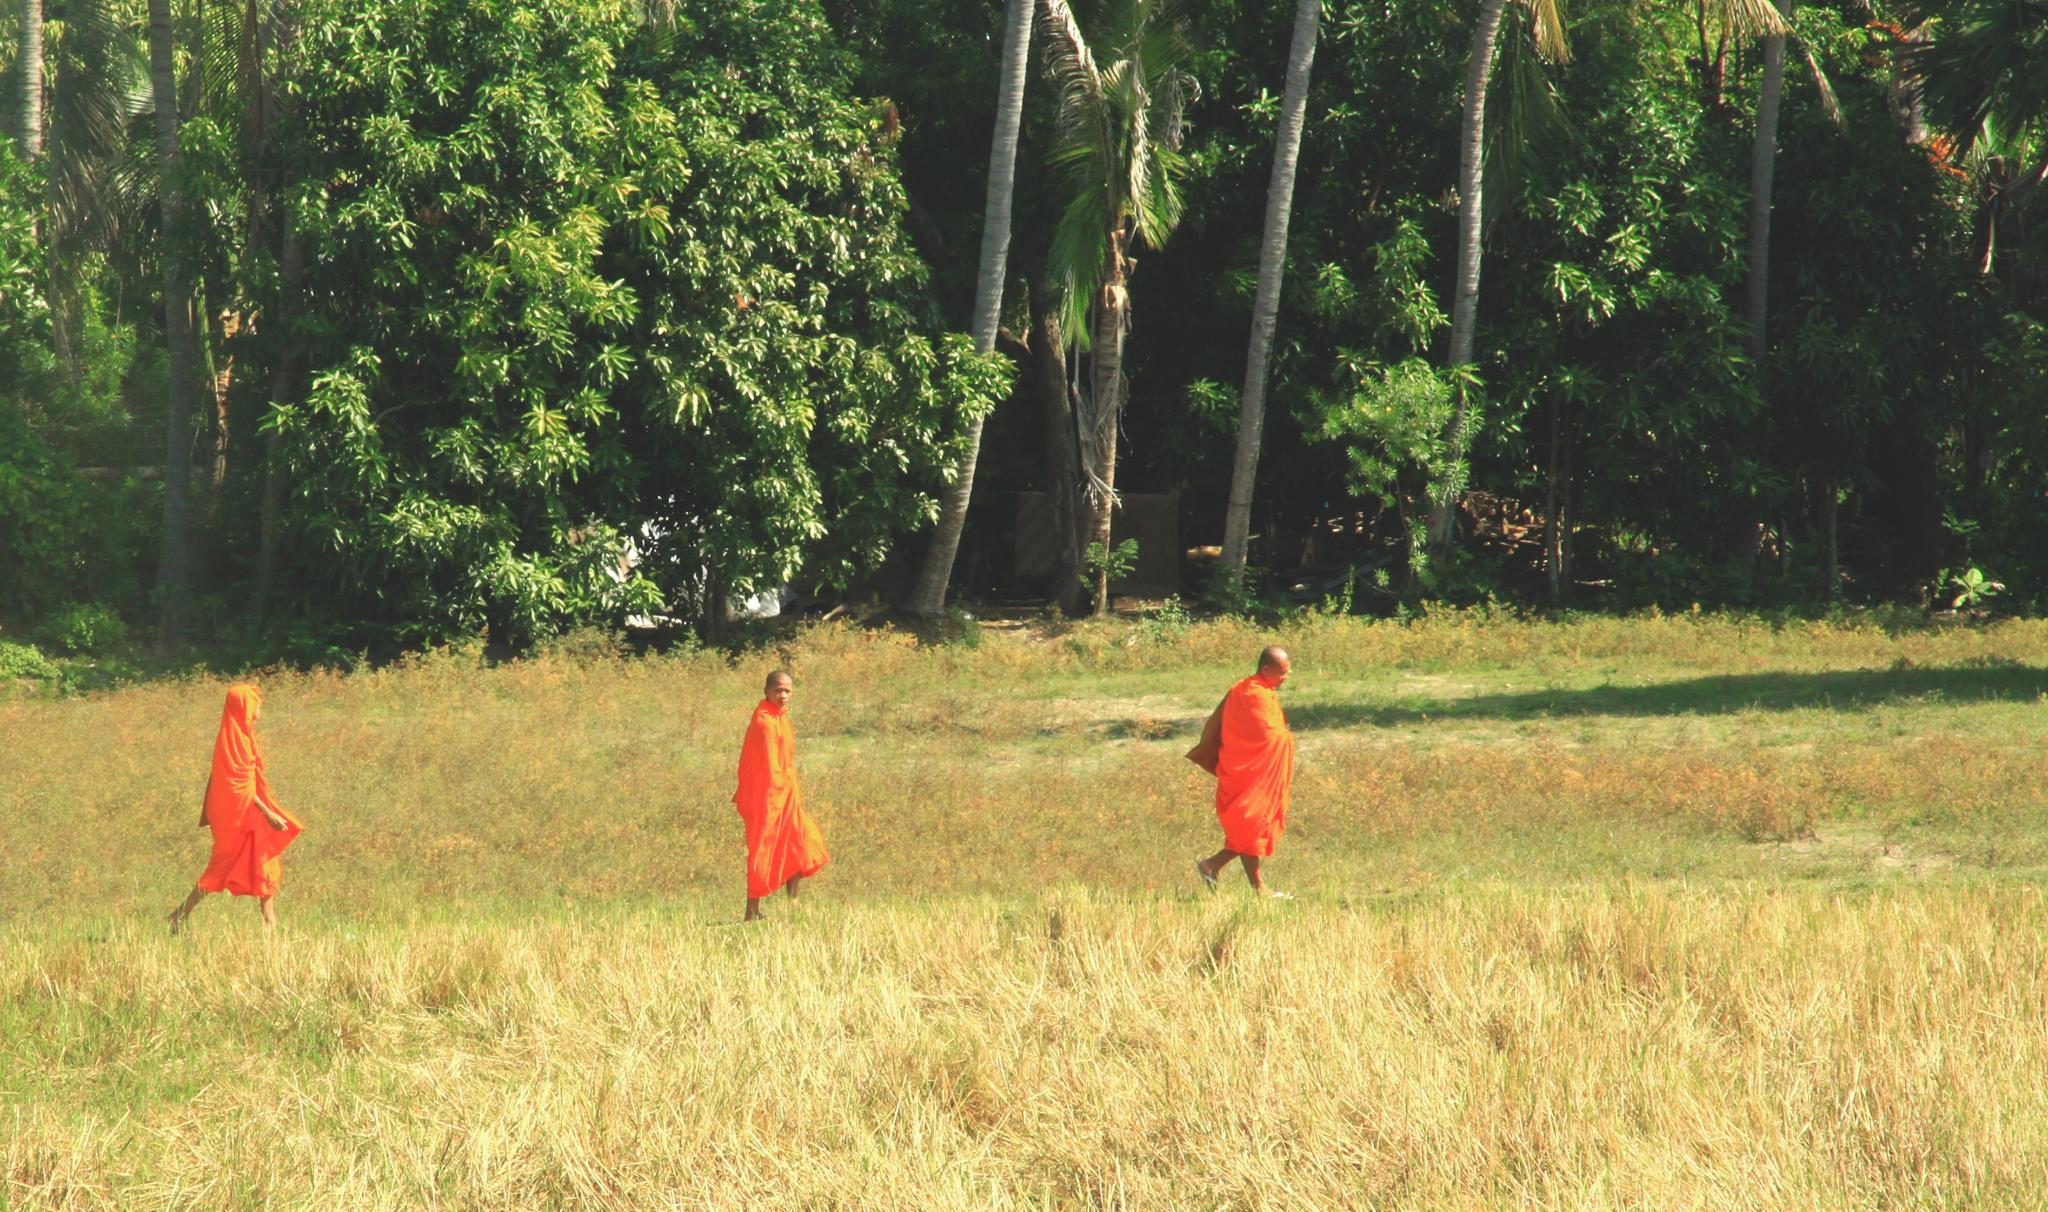 Monks are enroute